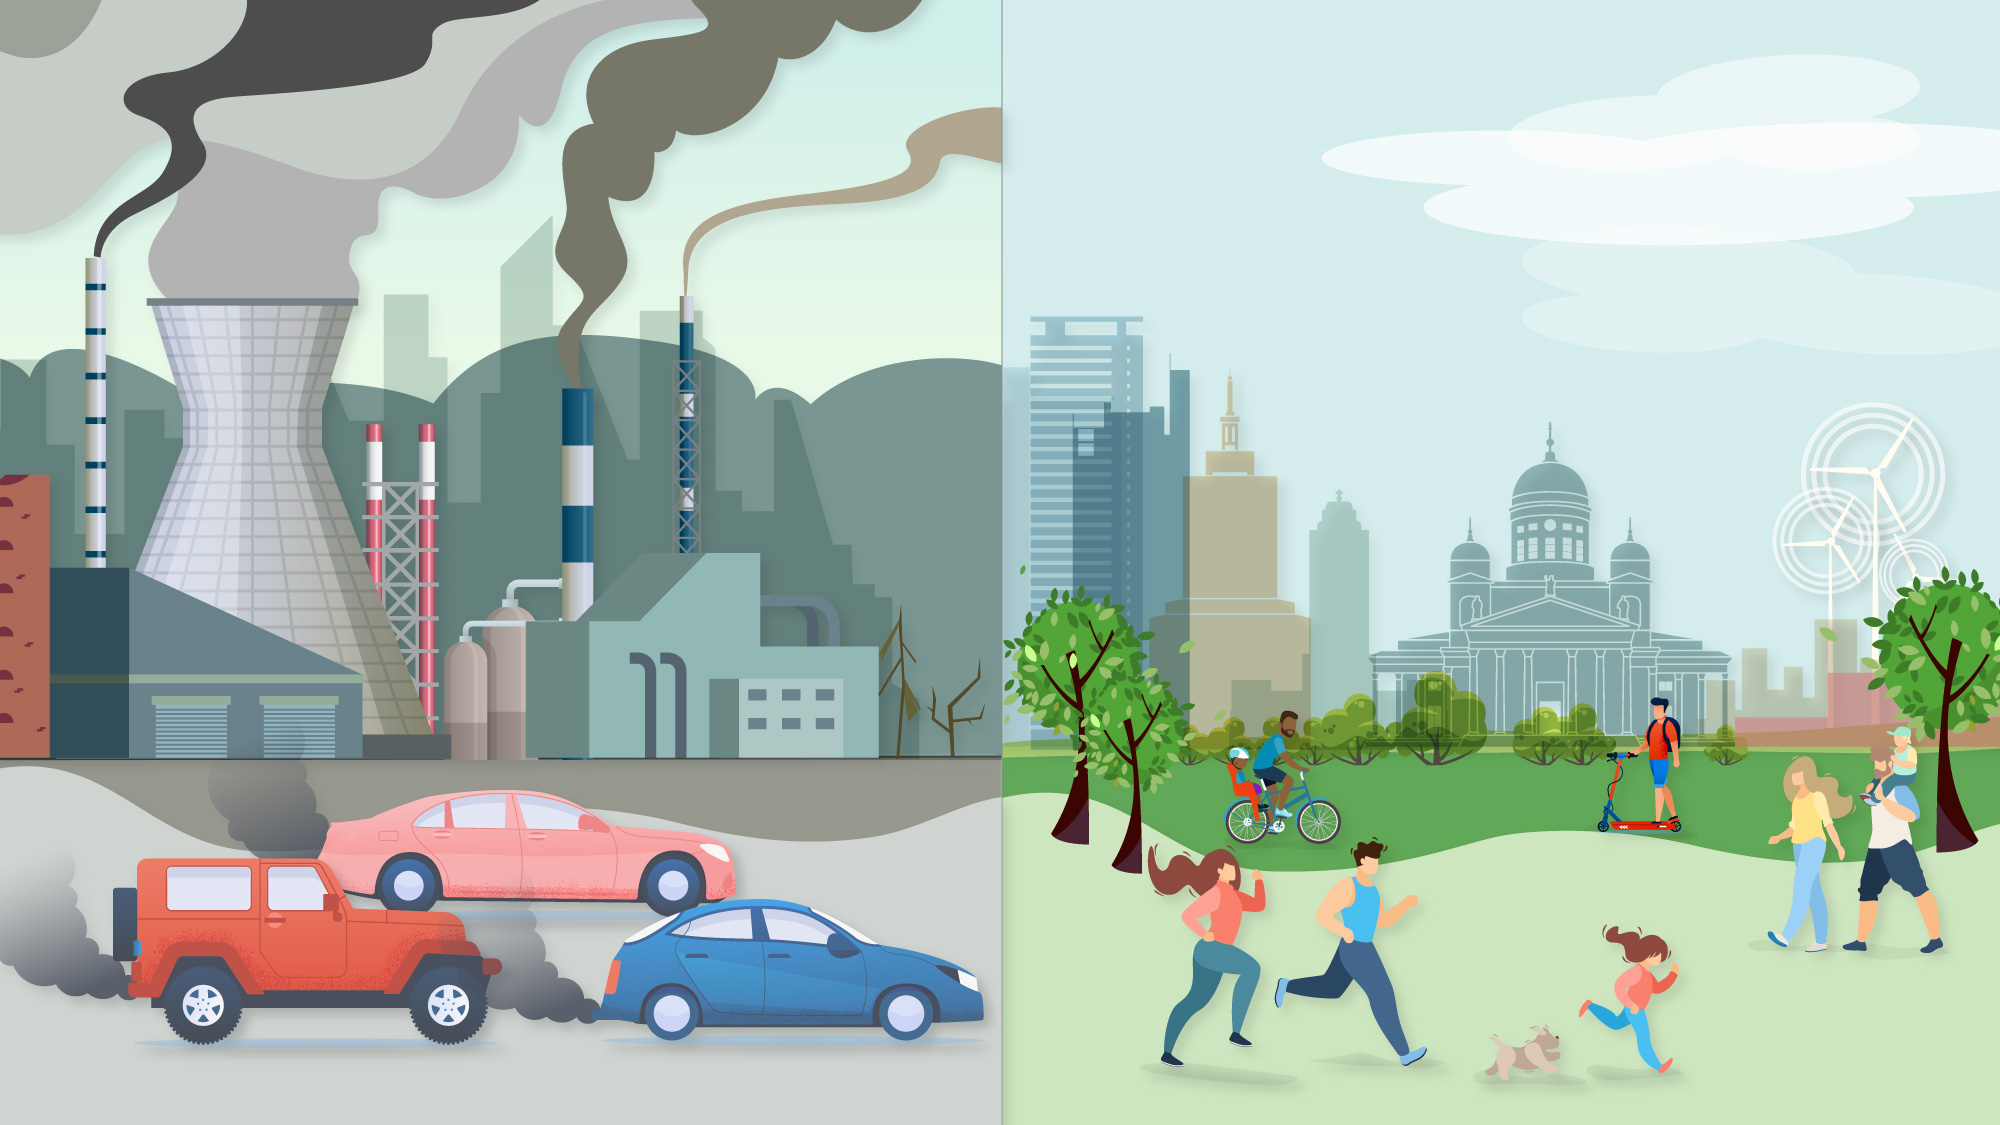 Illustration of clean and polluted environments